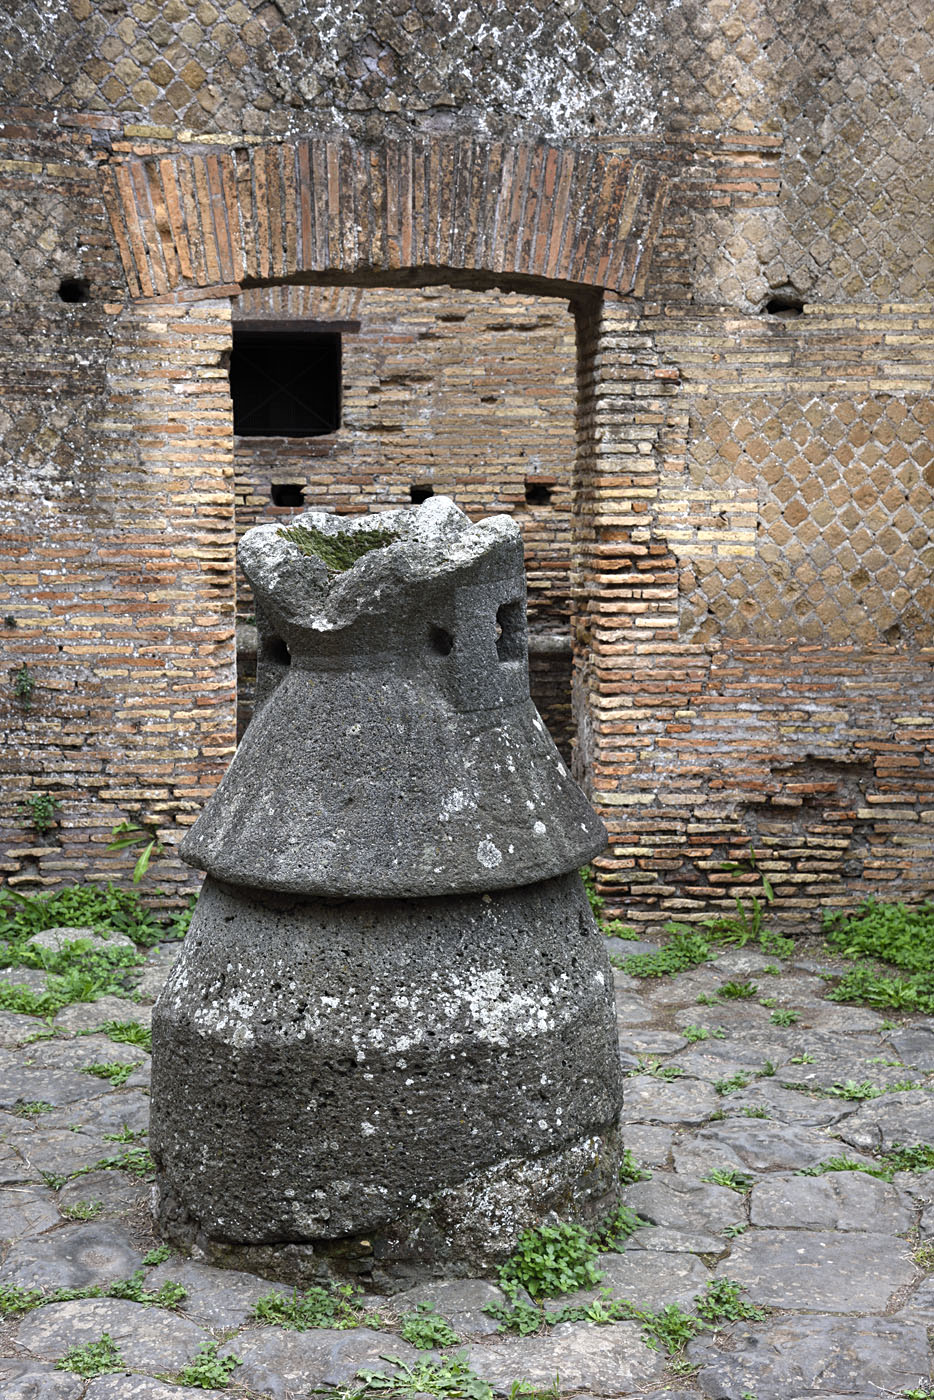 Mill in the bakery on the Via dei Mulini. Volcanic stone. 2nd century CE. Ostia, Archaeological site (I, III, 1)